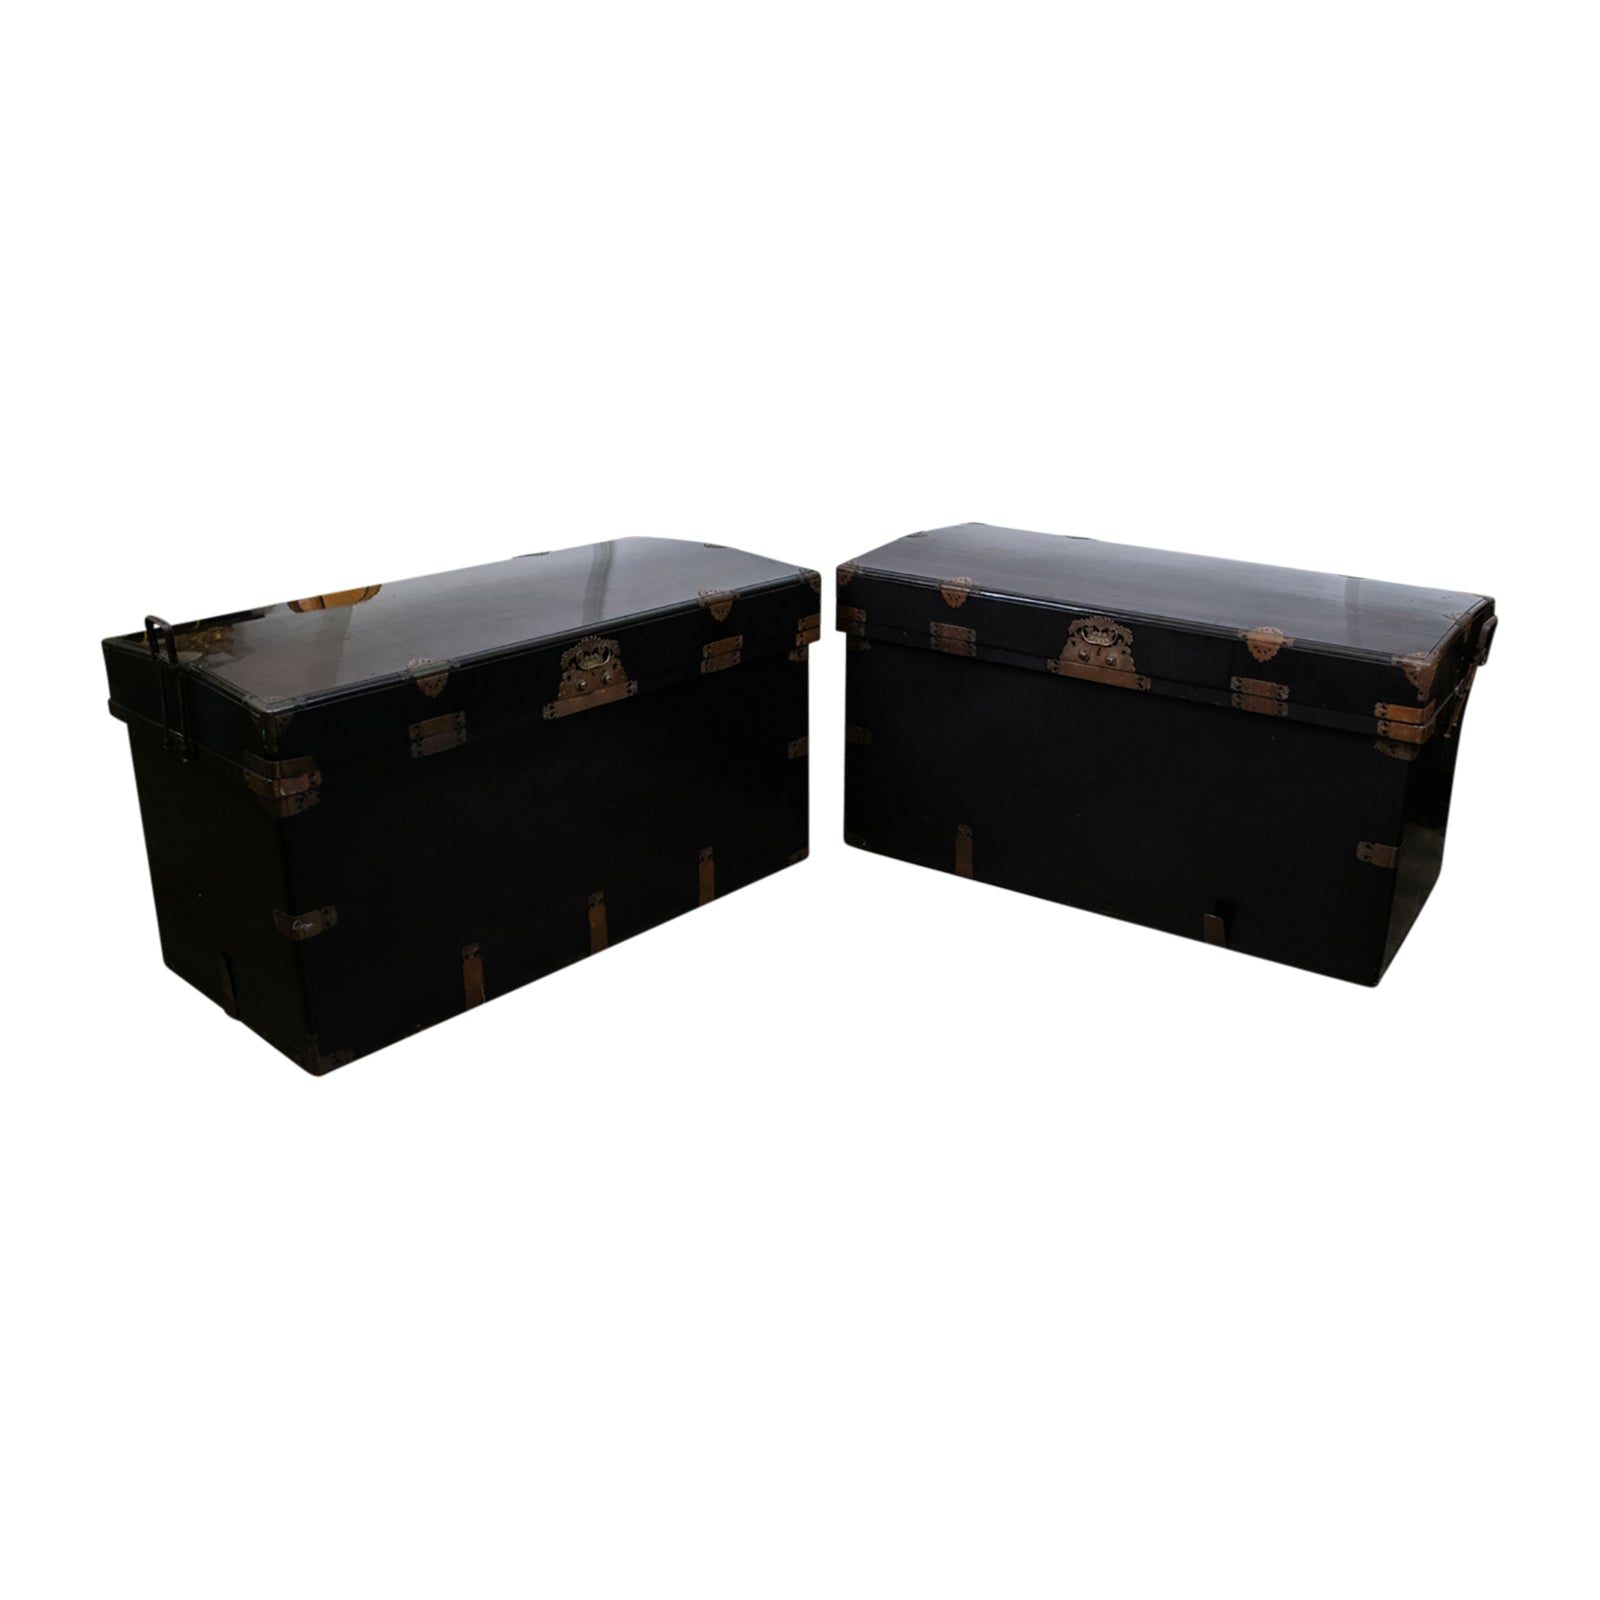 Pair of Substantial 19th Century Japanese Lacquer Chests